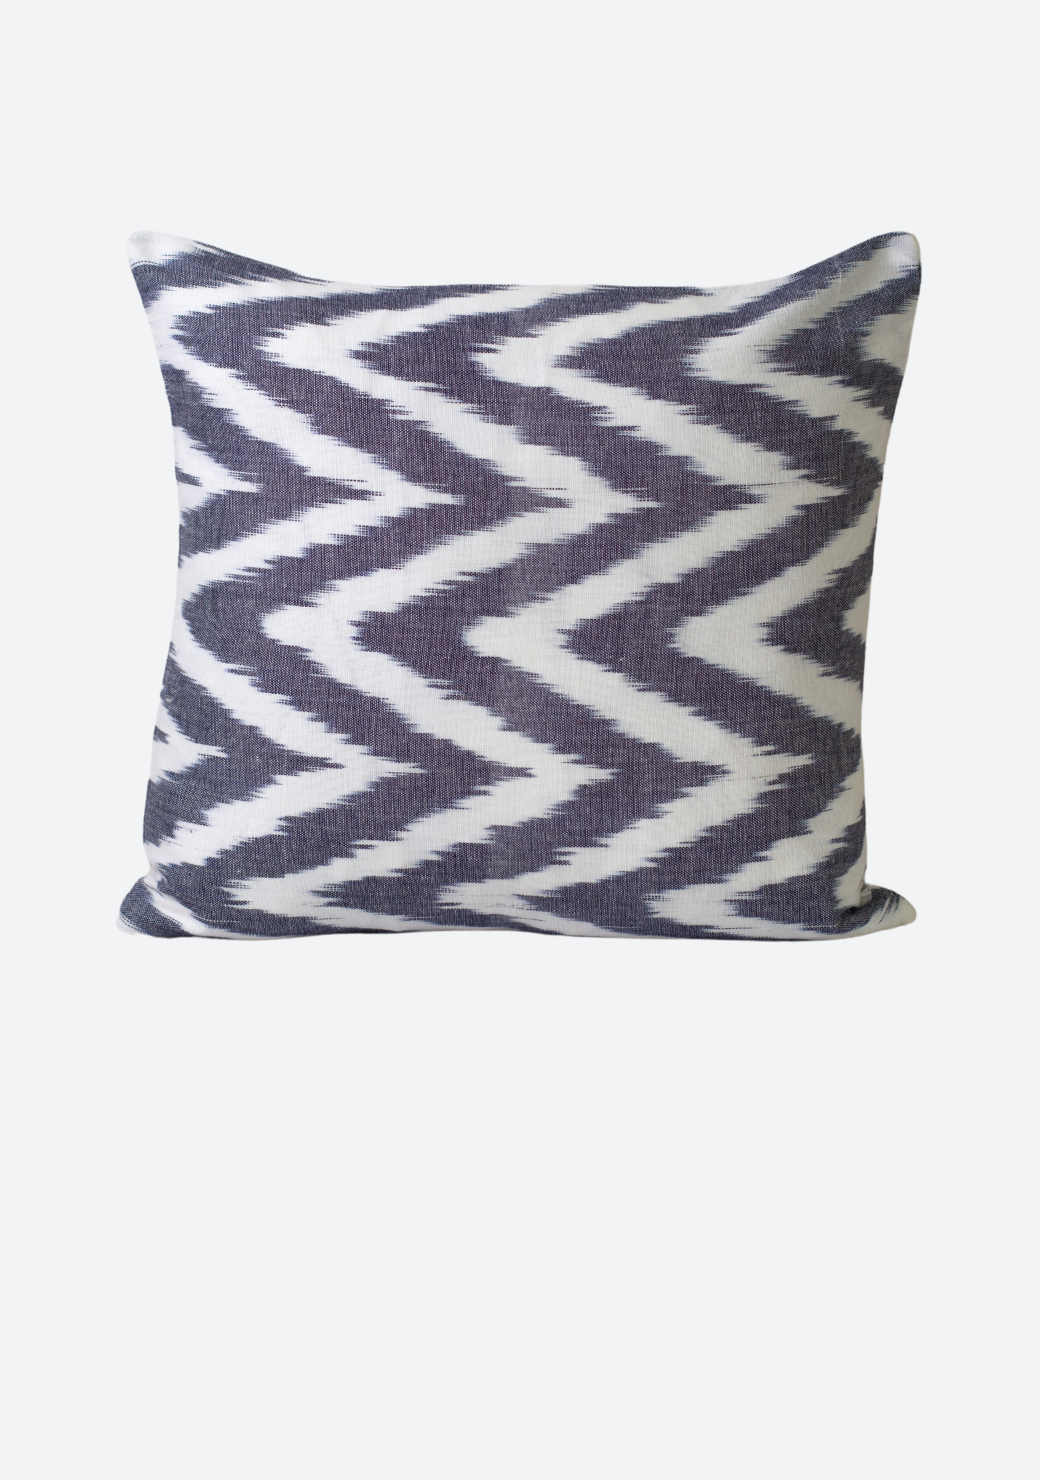 Small Cushion Cover in Dark Blue